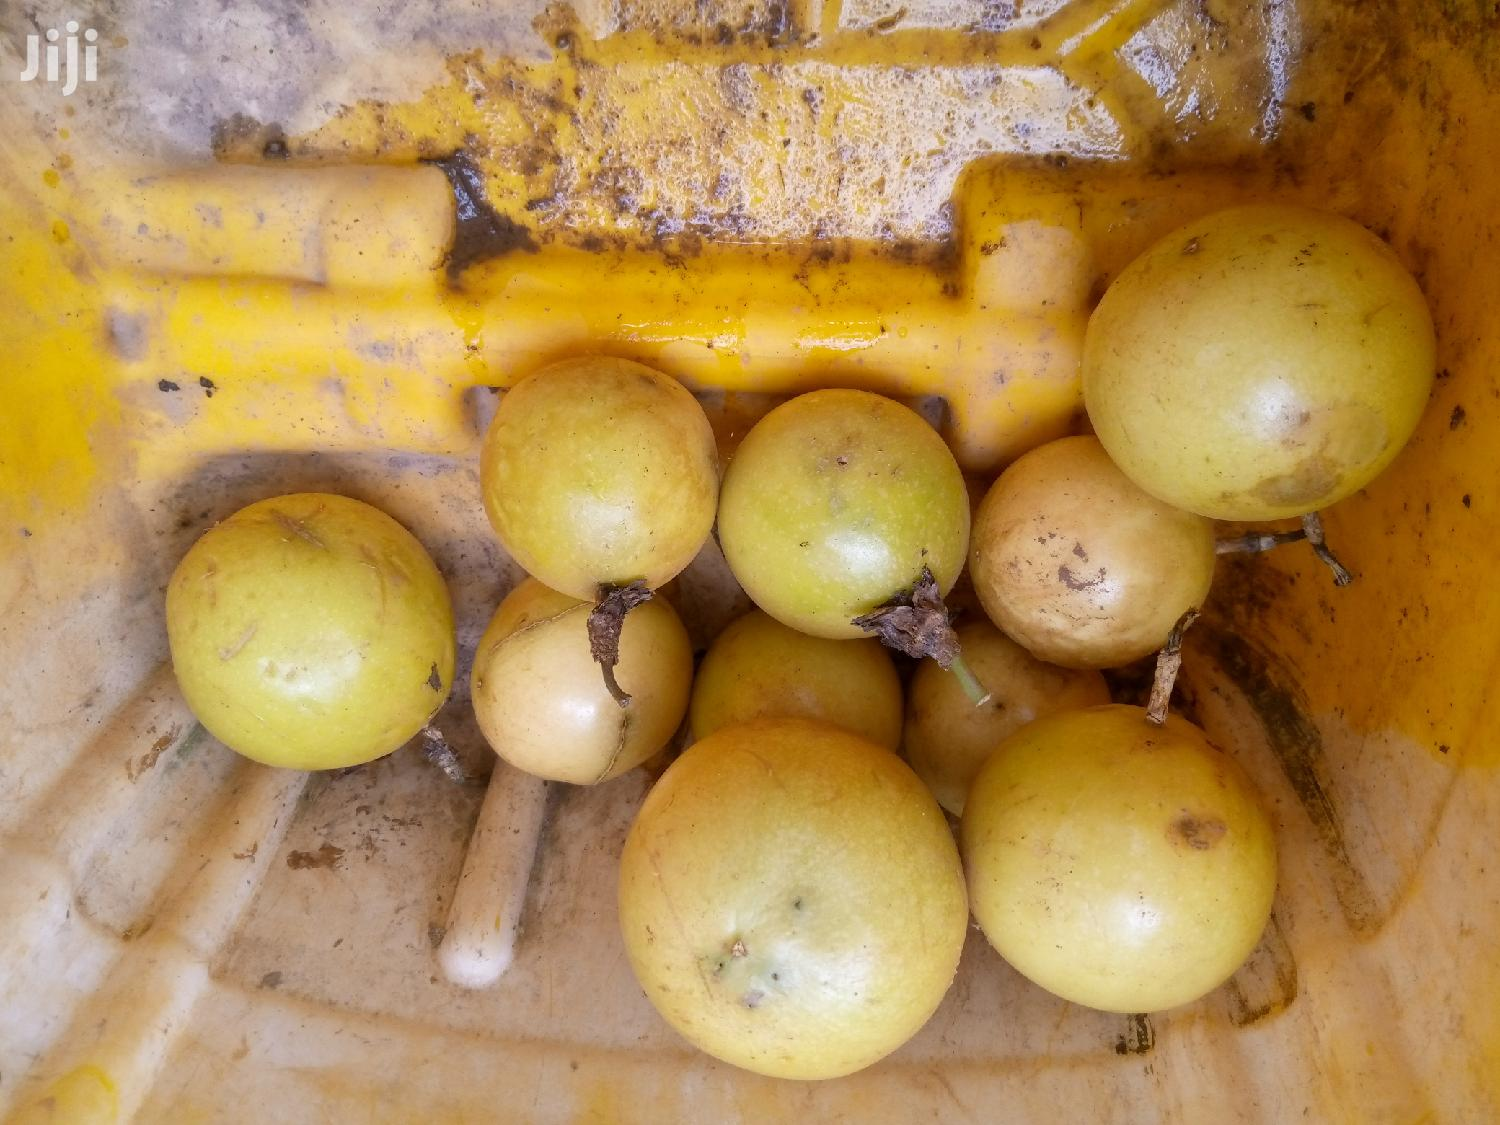 Passion Fruit Seedlings For Sale | Feeds, Supplements & Seeds for sale in Ahafo Ano South, Ashanti, Ghana